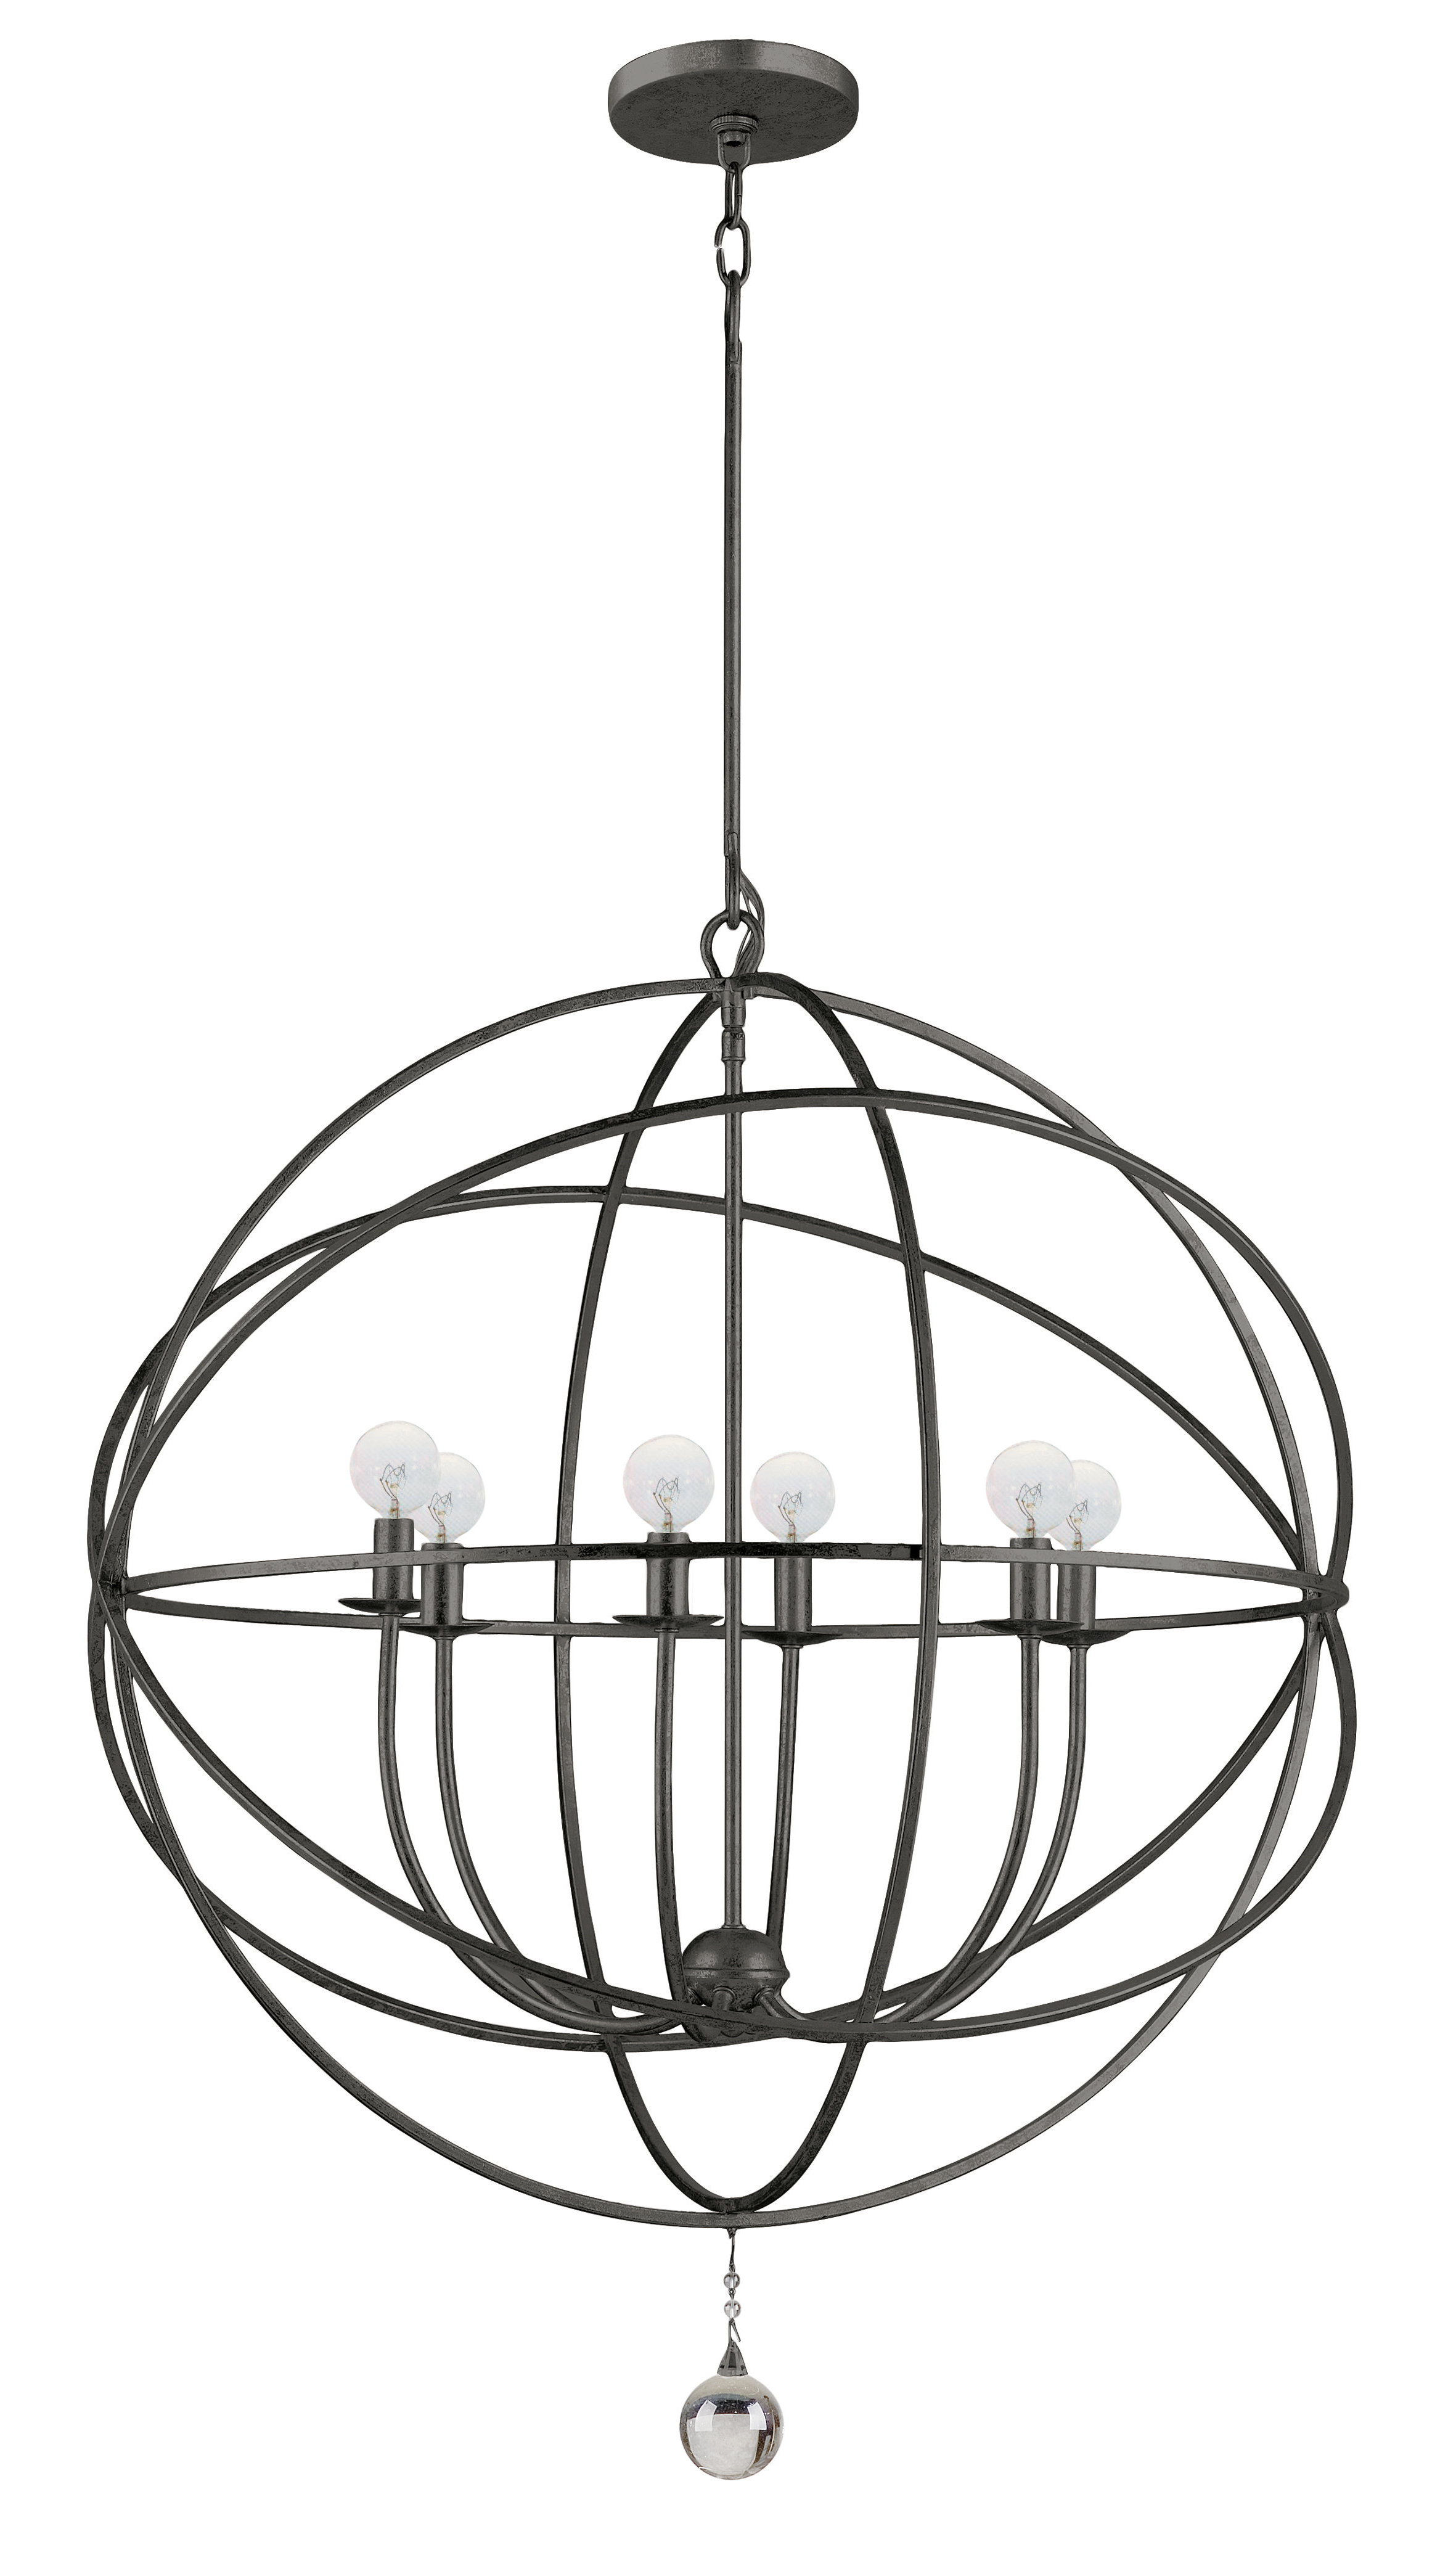 Popular Gregoire 6 Light Globe Chandeliers Regarding Gregoire 6 Light Globe Chandelier (Gallery 1 of 20)